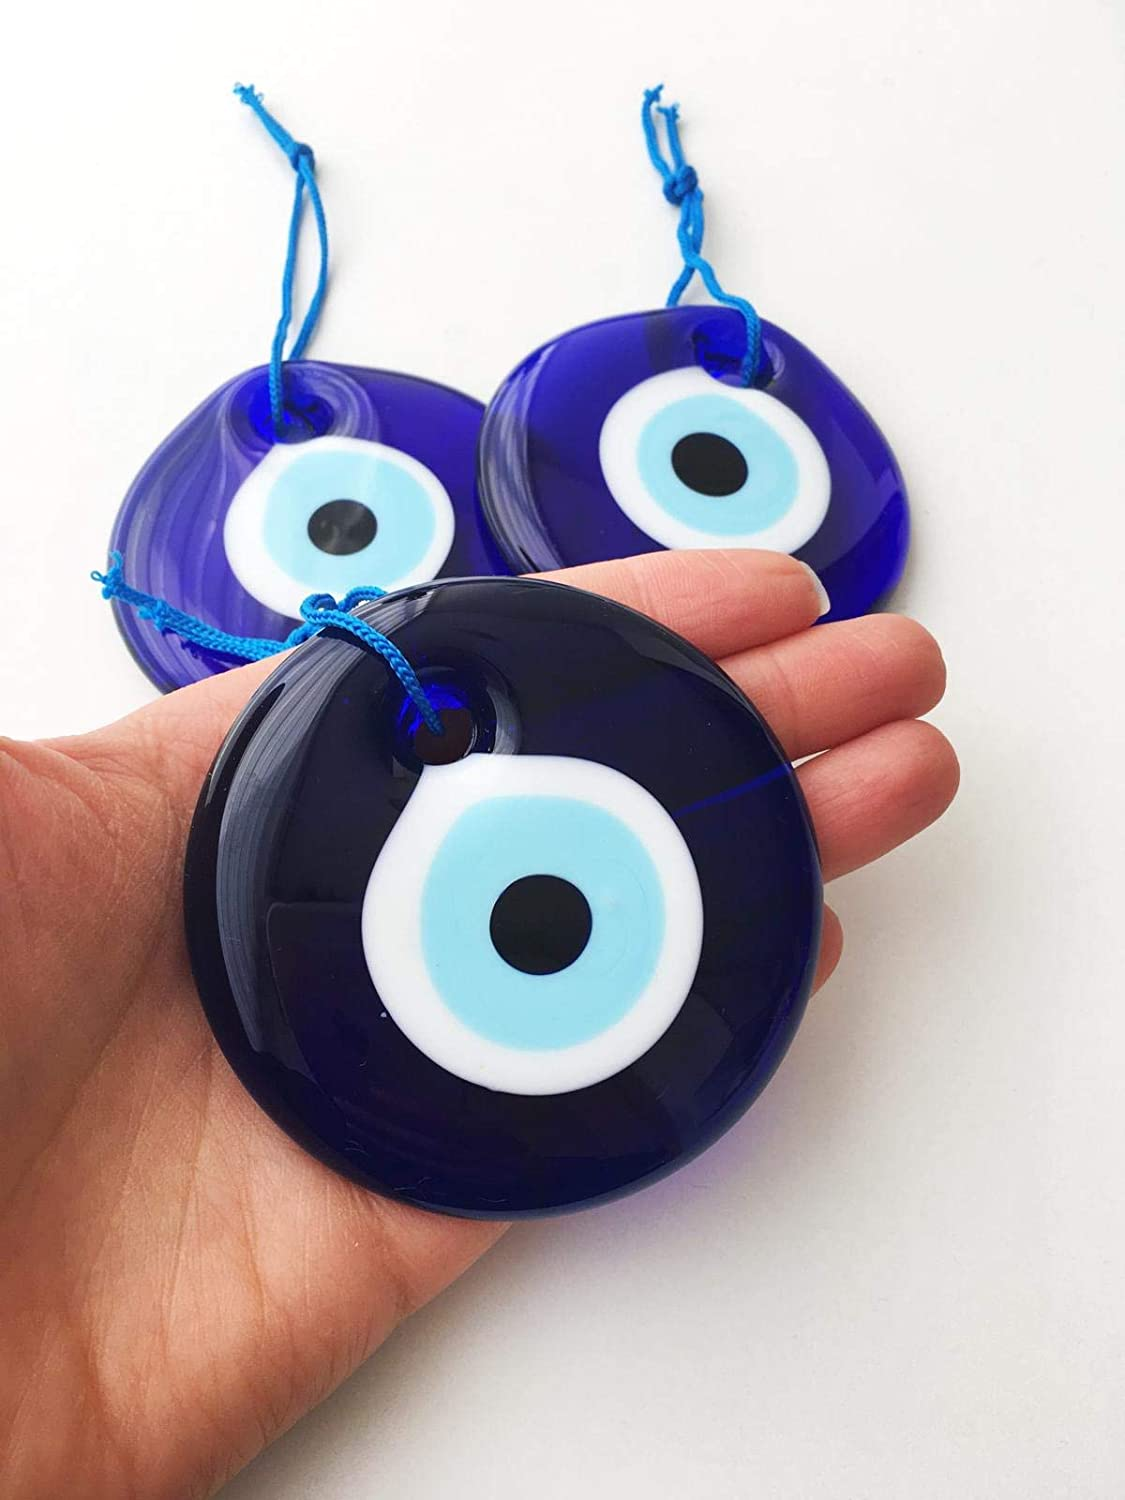 Luos Cultural Goods Evil Eye Home Protector - Glass Beads, Good Luck Charm, Doorway, Home Decoration, Wall Hanging, Gift Item, 2.75 Inches Wide